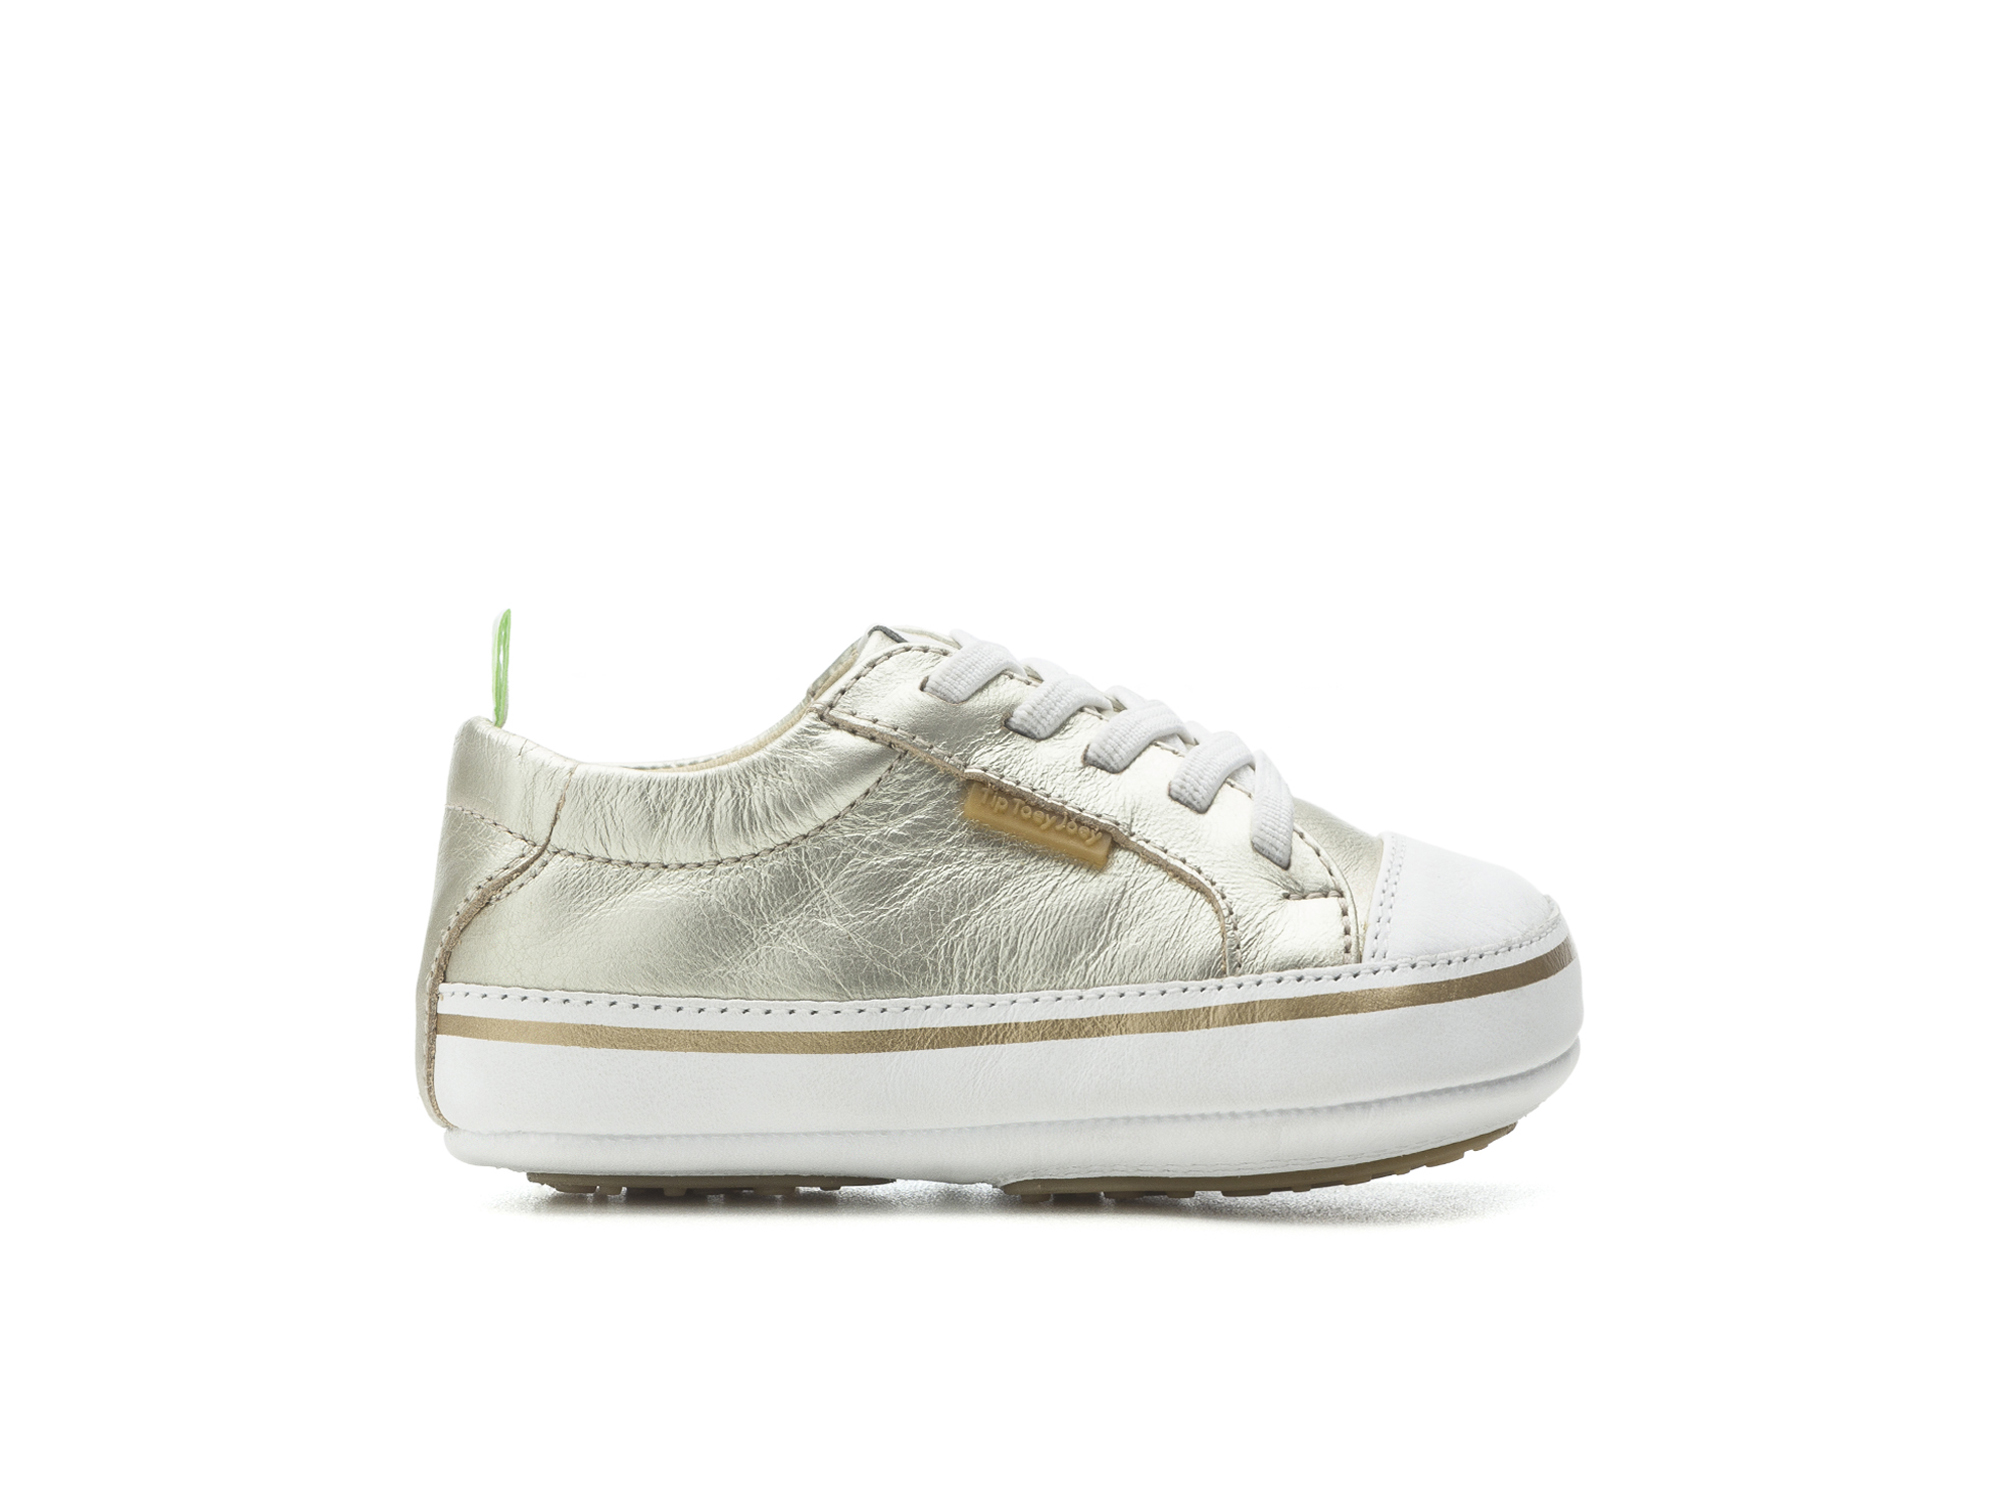 Tênis Funky Whitegold/ White Baby for ages 0 to 2 years - 1